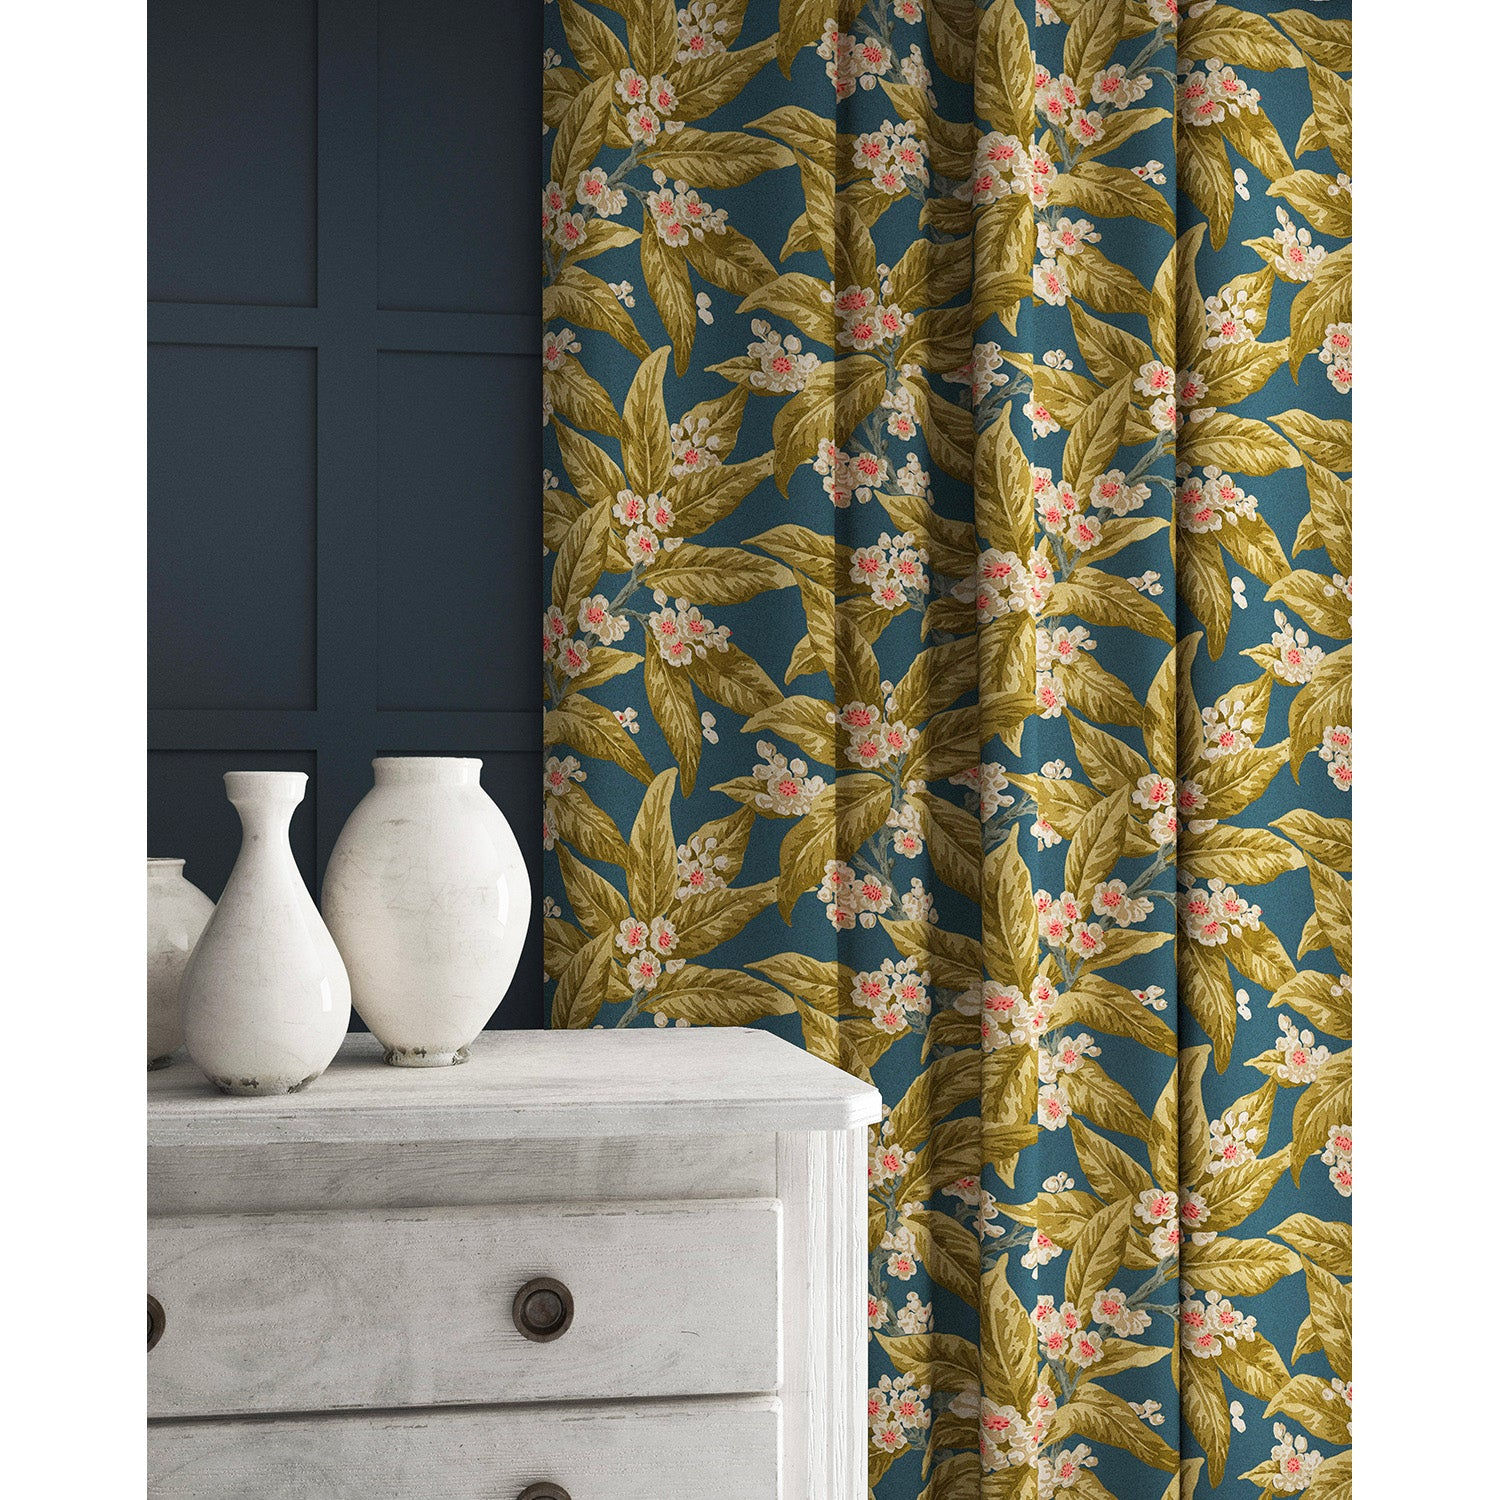 Velvet curtains in a blue and ochre coloured velvet fabric with a leaf and blossom design and stain resistant finish